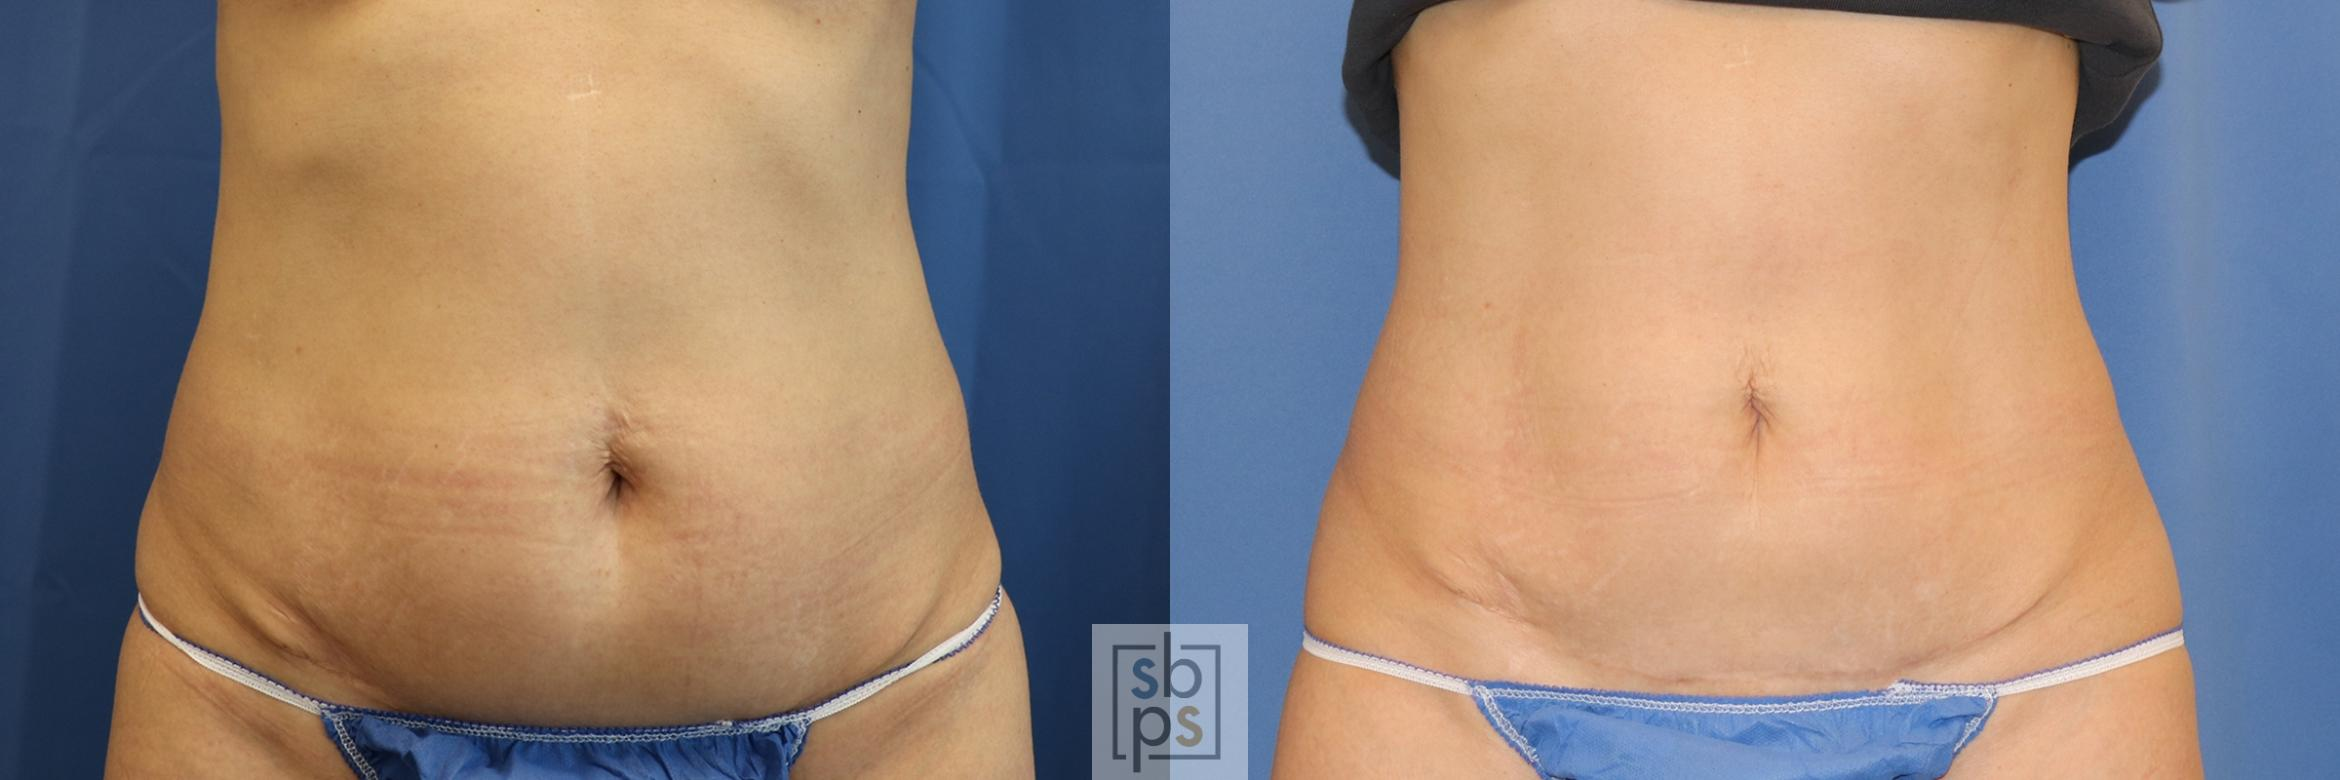 CoolSculpting Before & After Photo | Torrance, CA | Plastic Surgery Source